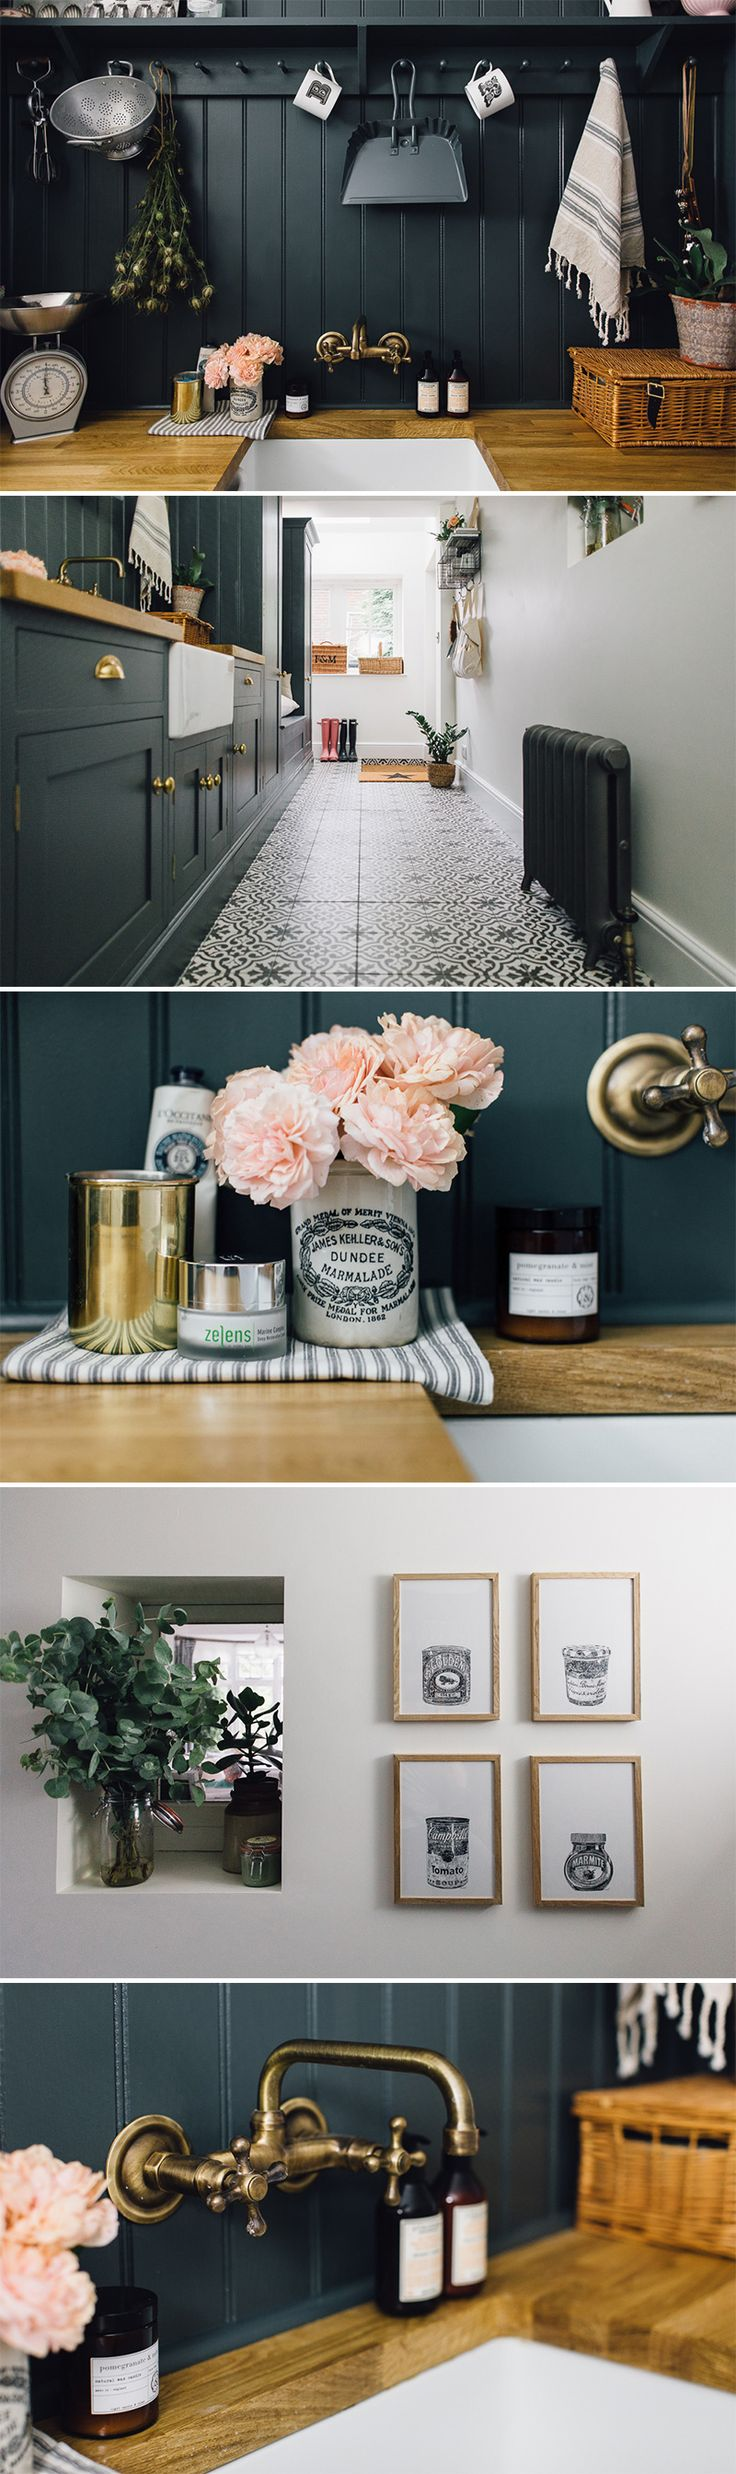 Utility And Boot Room With Down Pipe Painted Custom Tiles And Patterned Tile Floor. Farrow and Ball | Downpipes | Customer tiling | Patterned tile floor | Utility space | Utility room decor | Boot room decor | Blush and grey decor